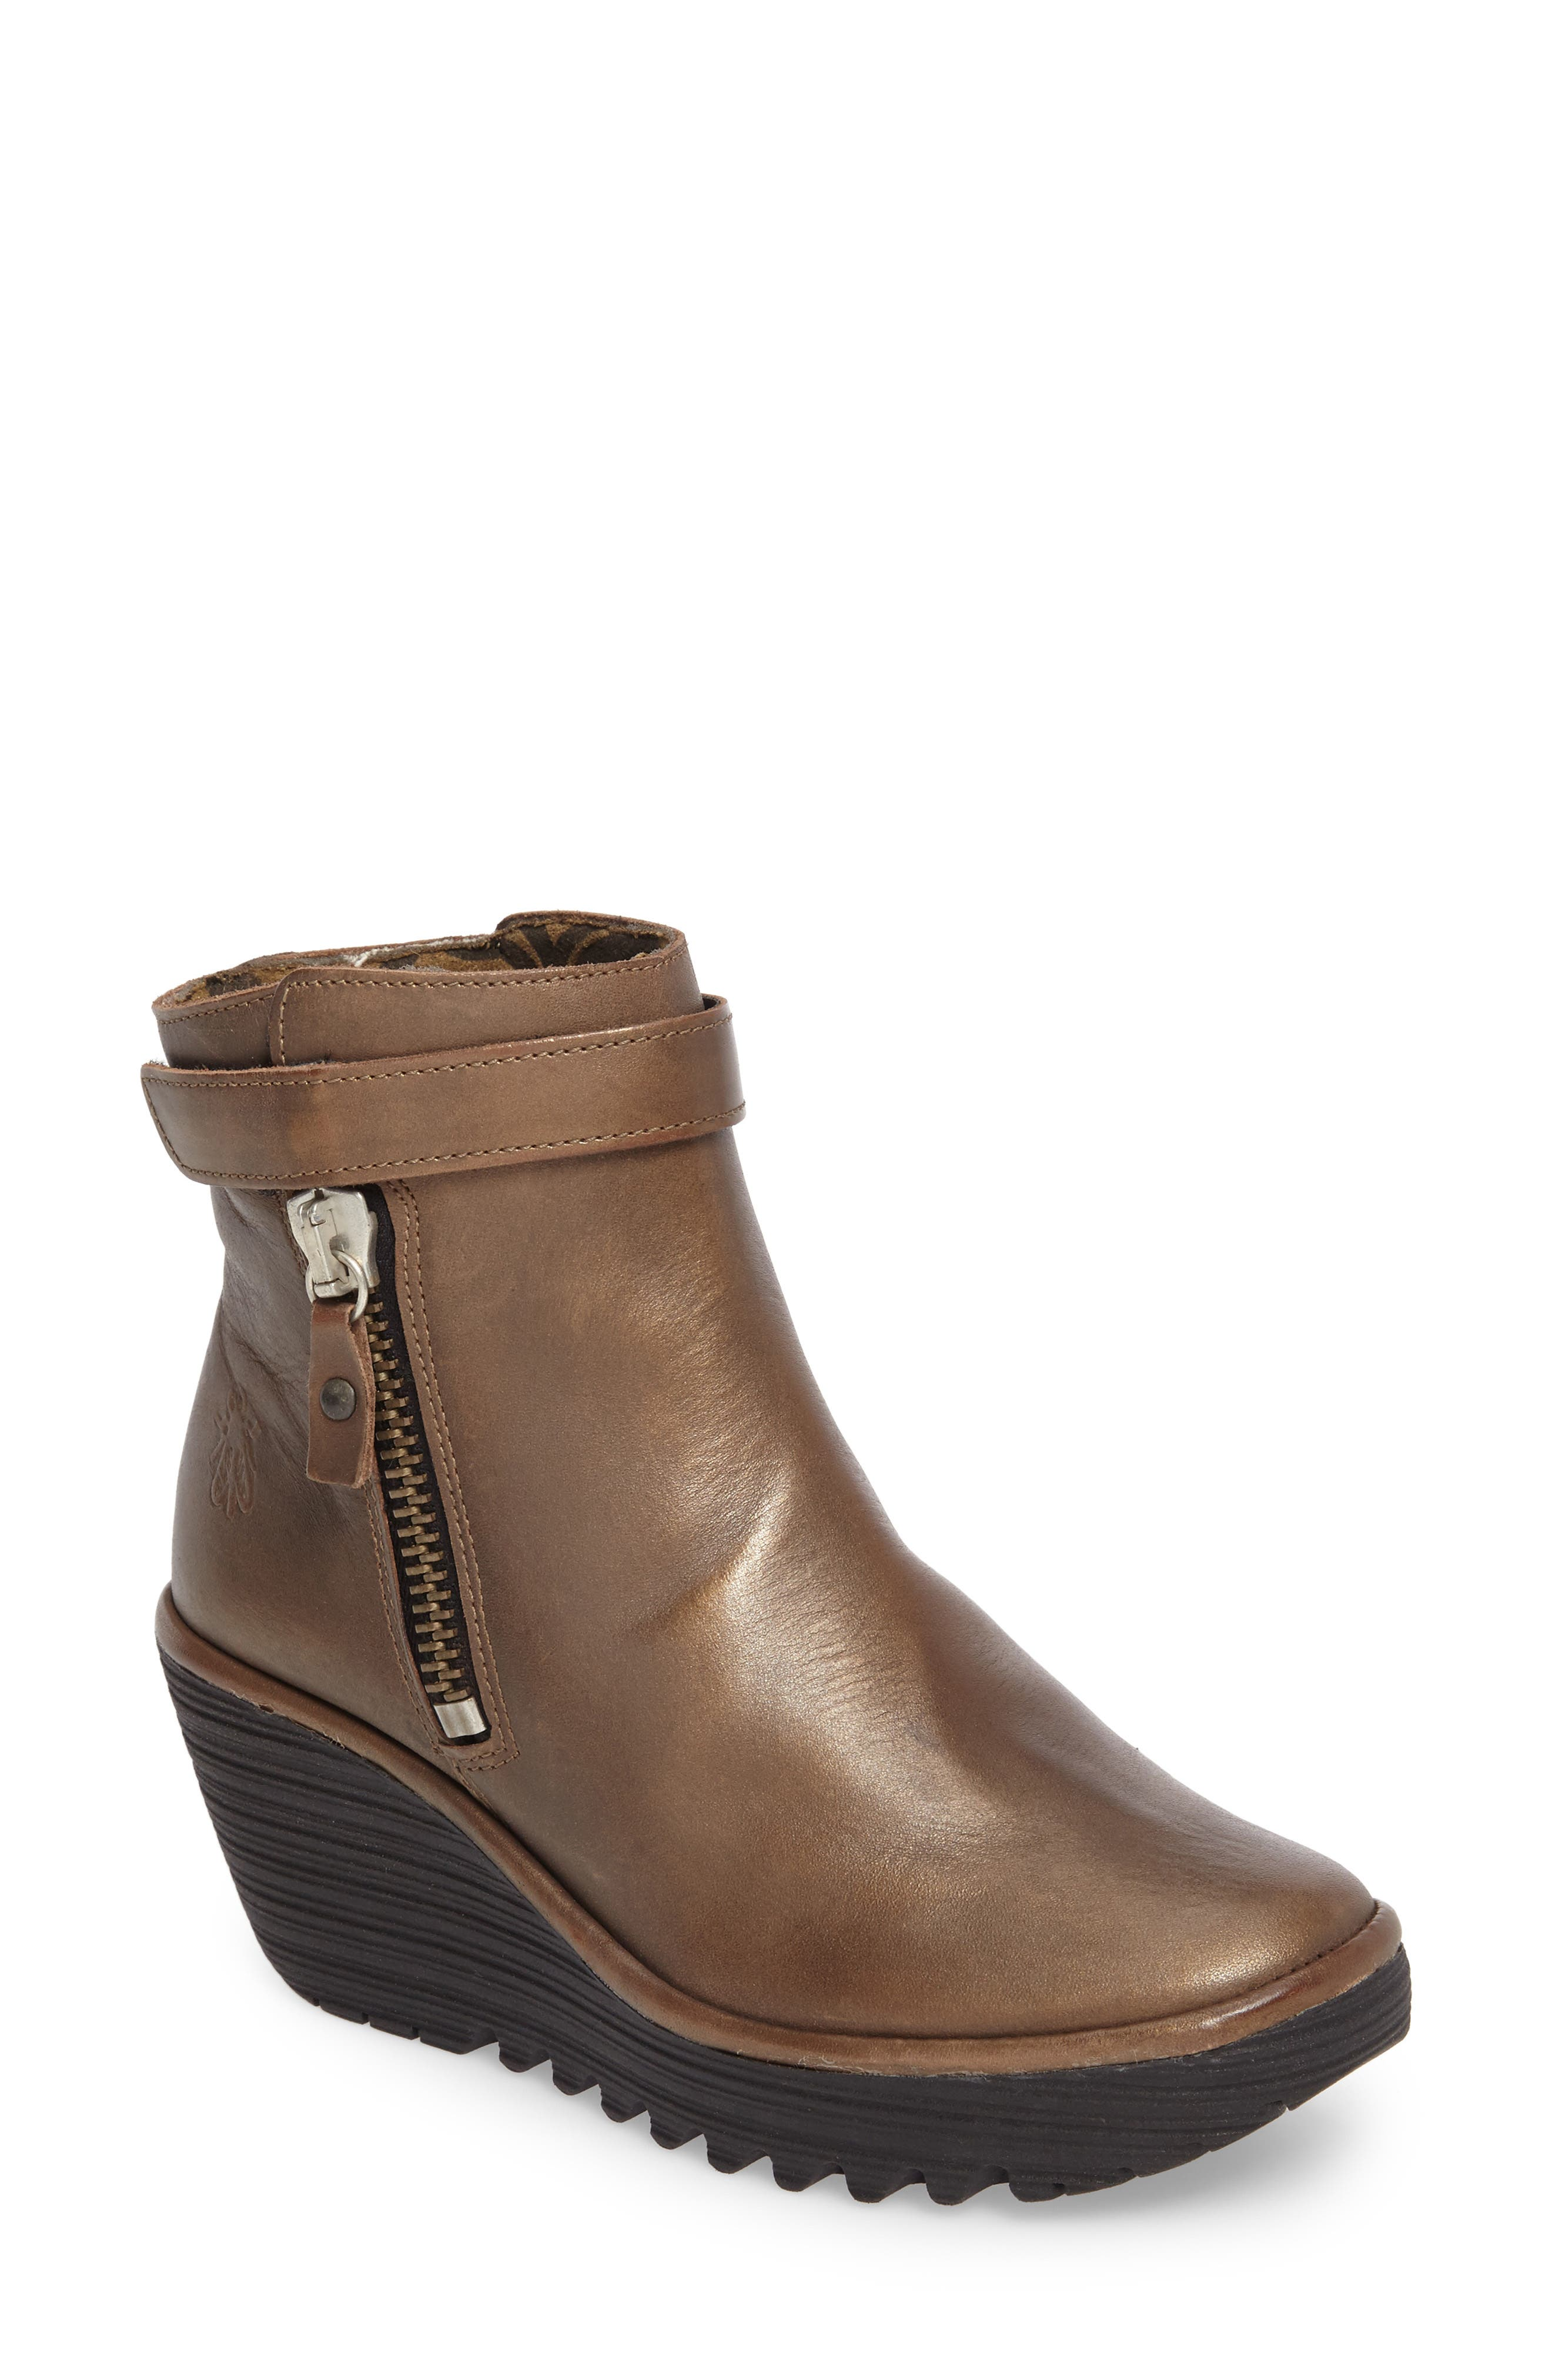 'Yava' Bootie,                         Main,                         color, Olive Grace Leather